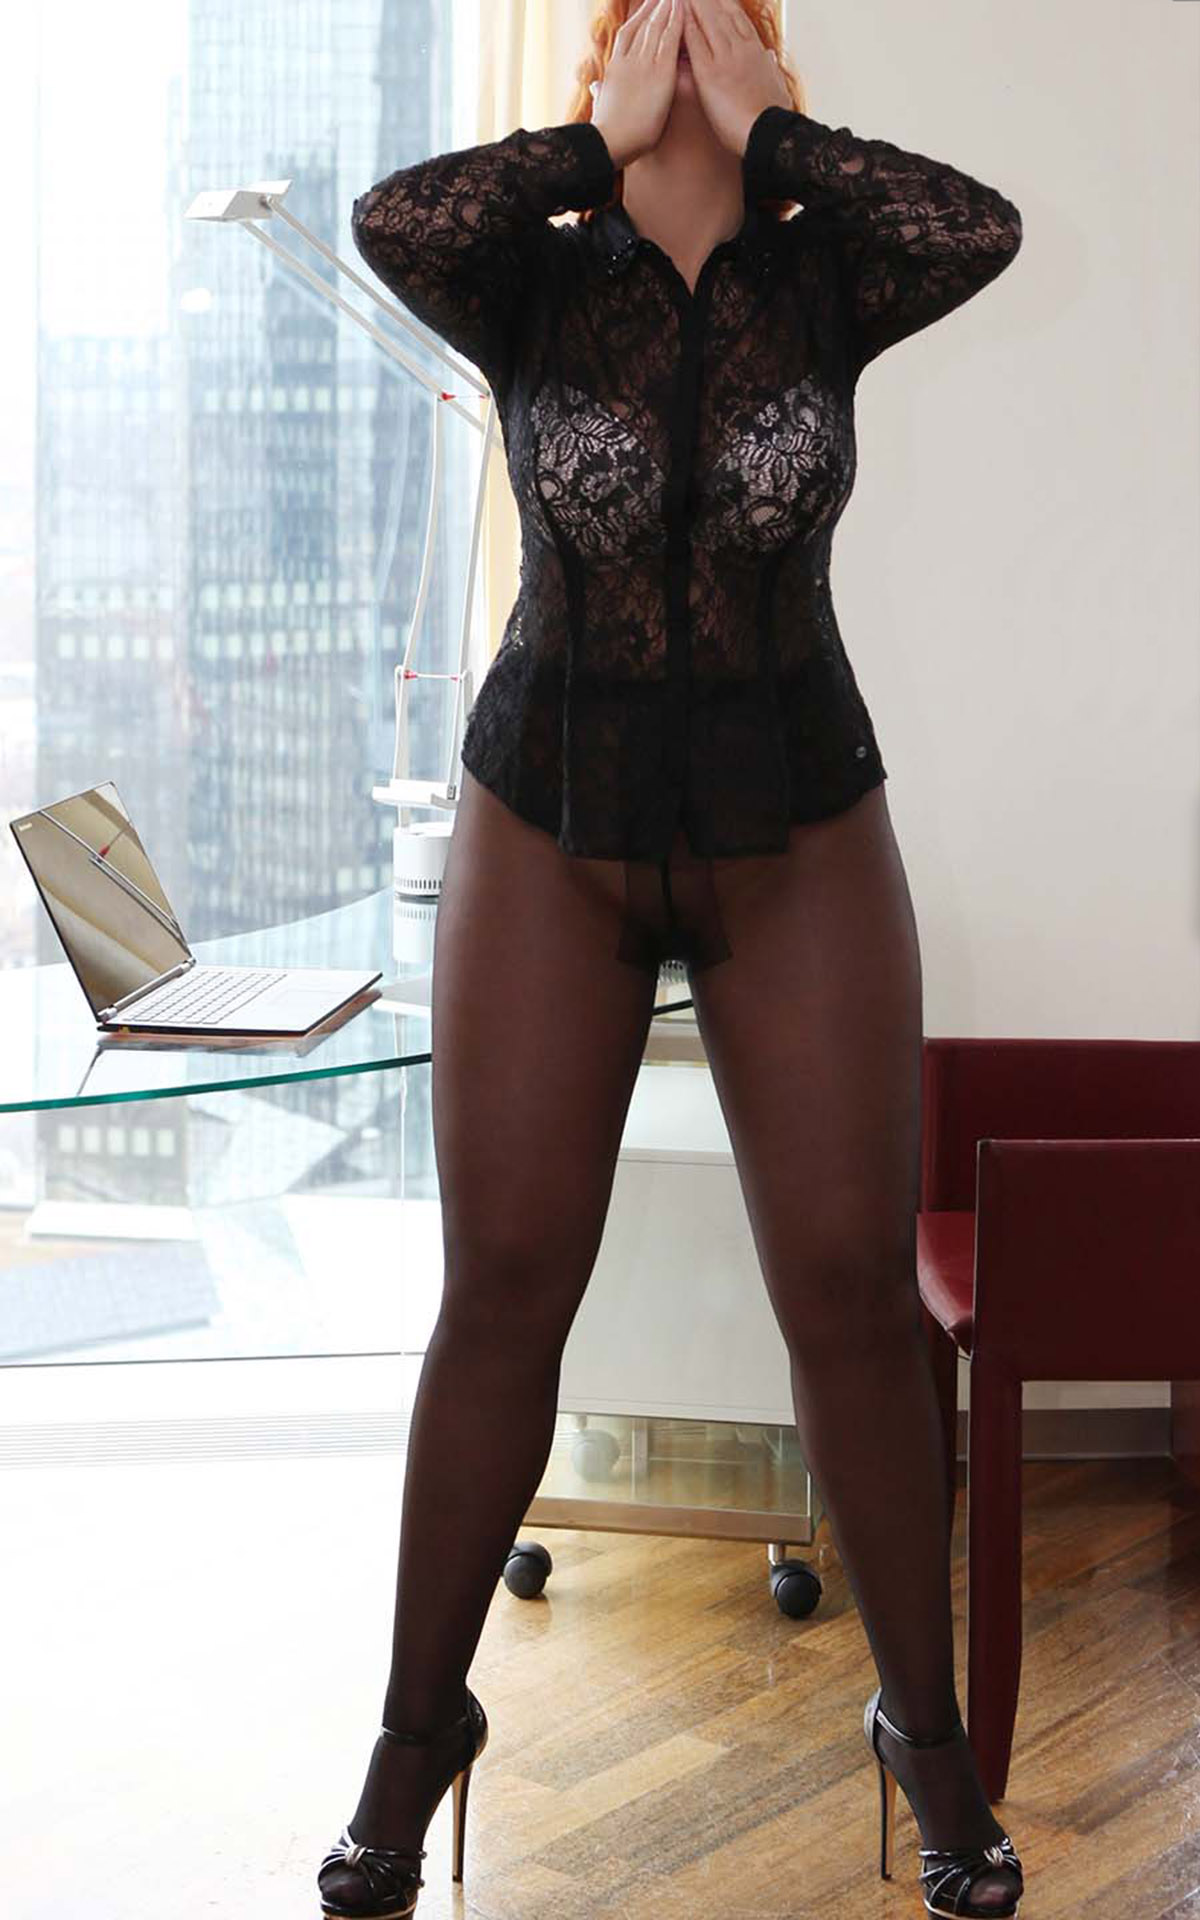 Sofia Elite escort in Nilons and high heels in the office